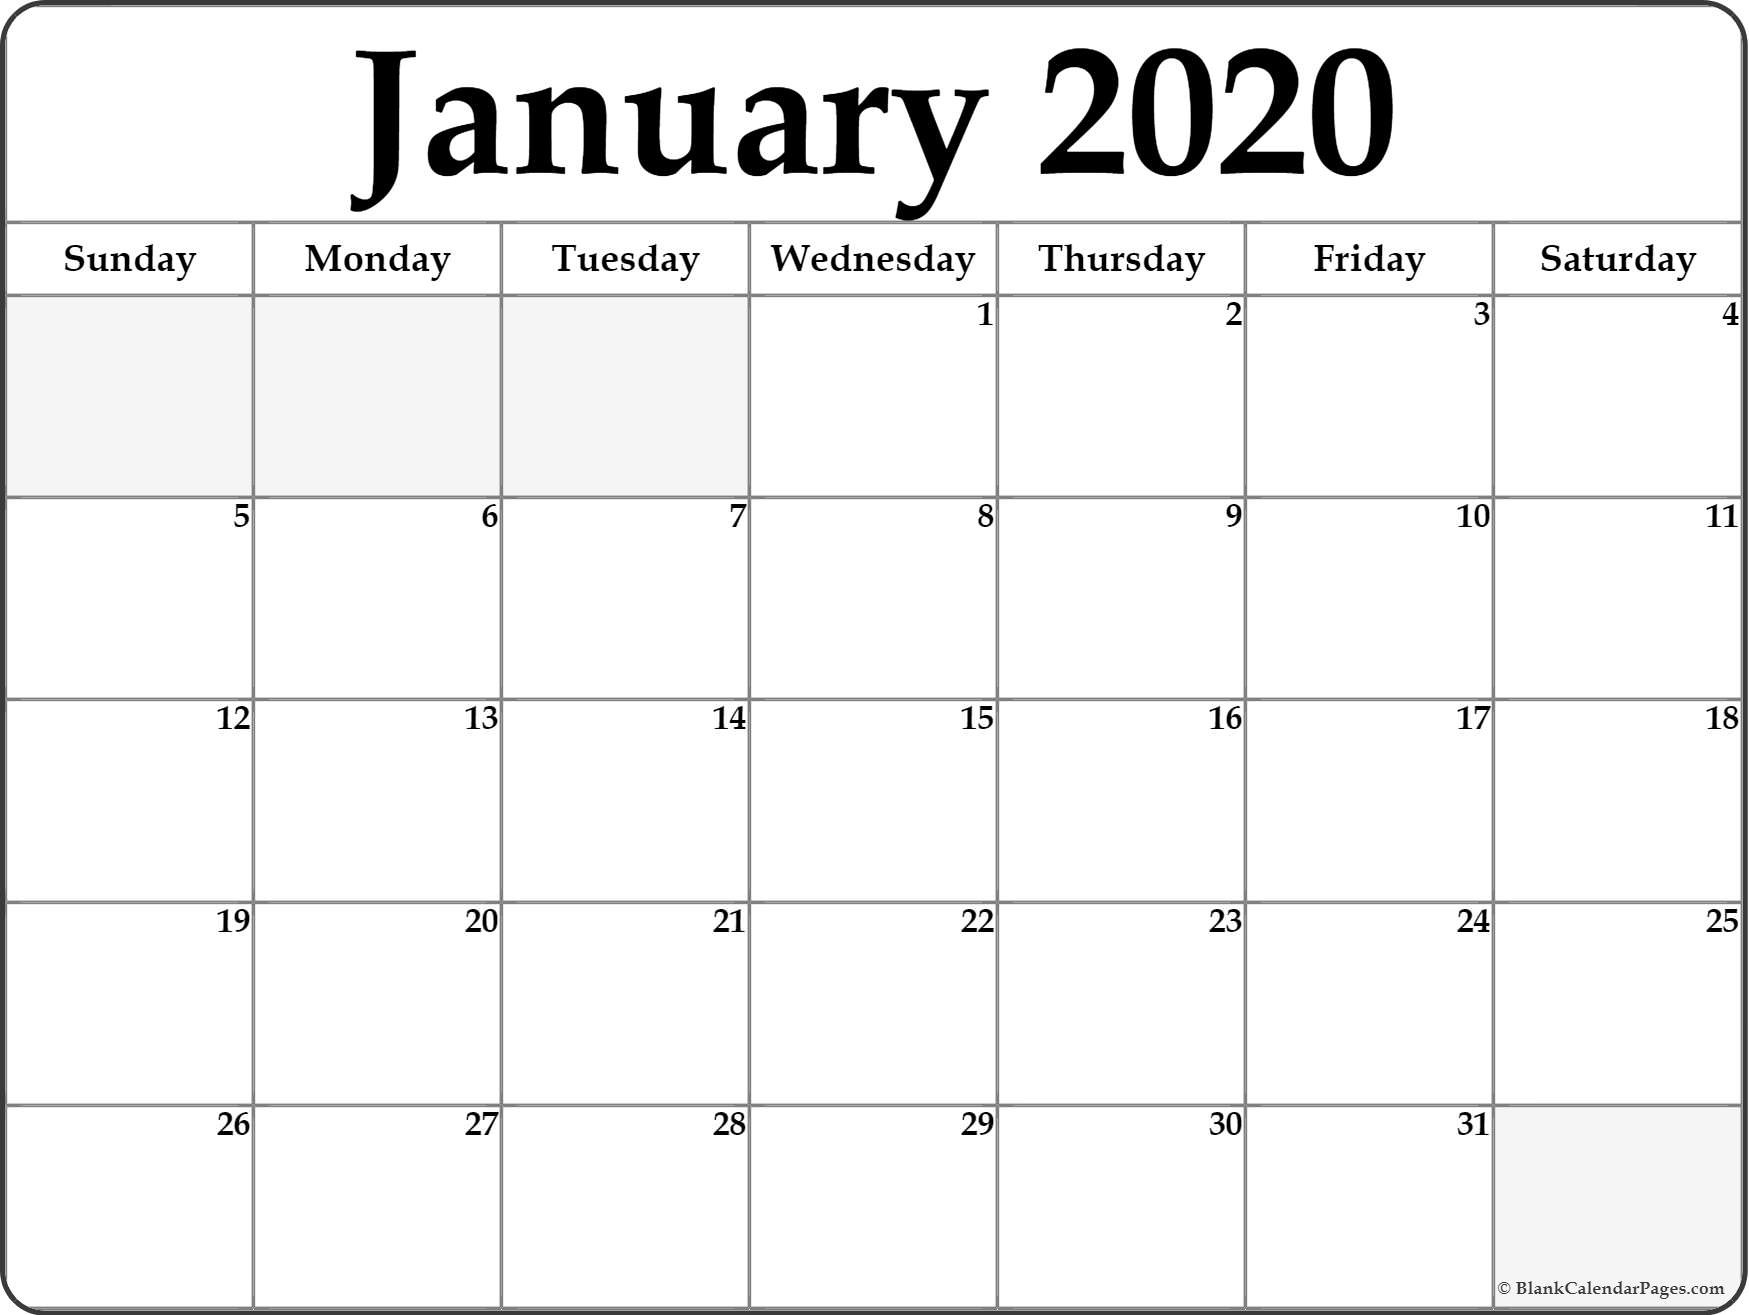 January 2020 Calendar | Free Printable Monthly Calendars  Download 2020 Blank Calendar Printable